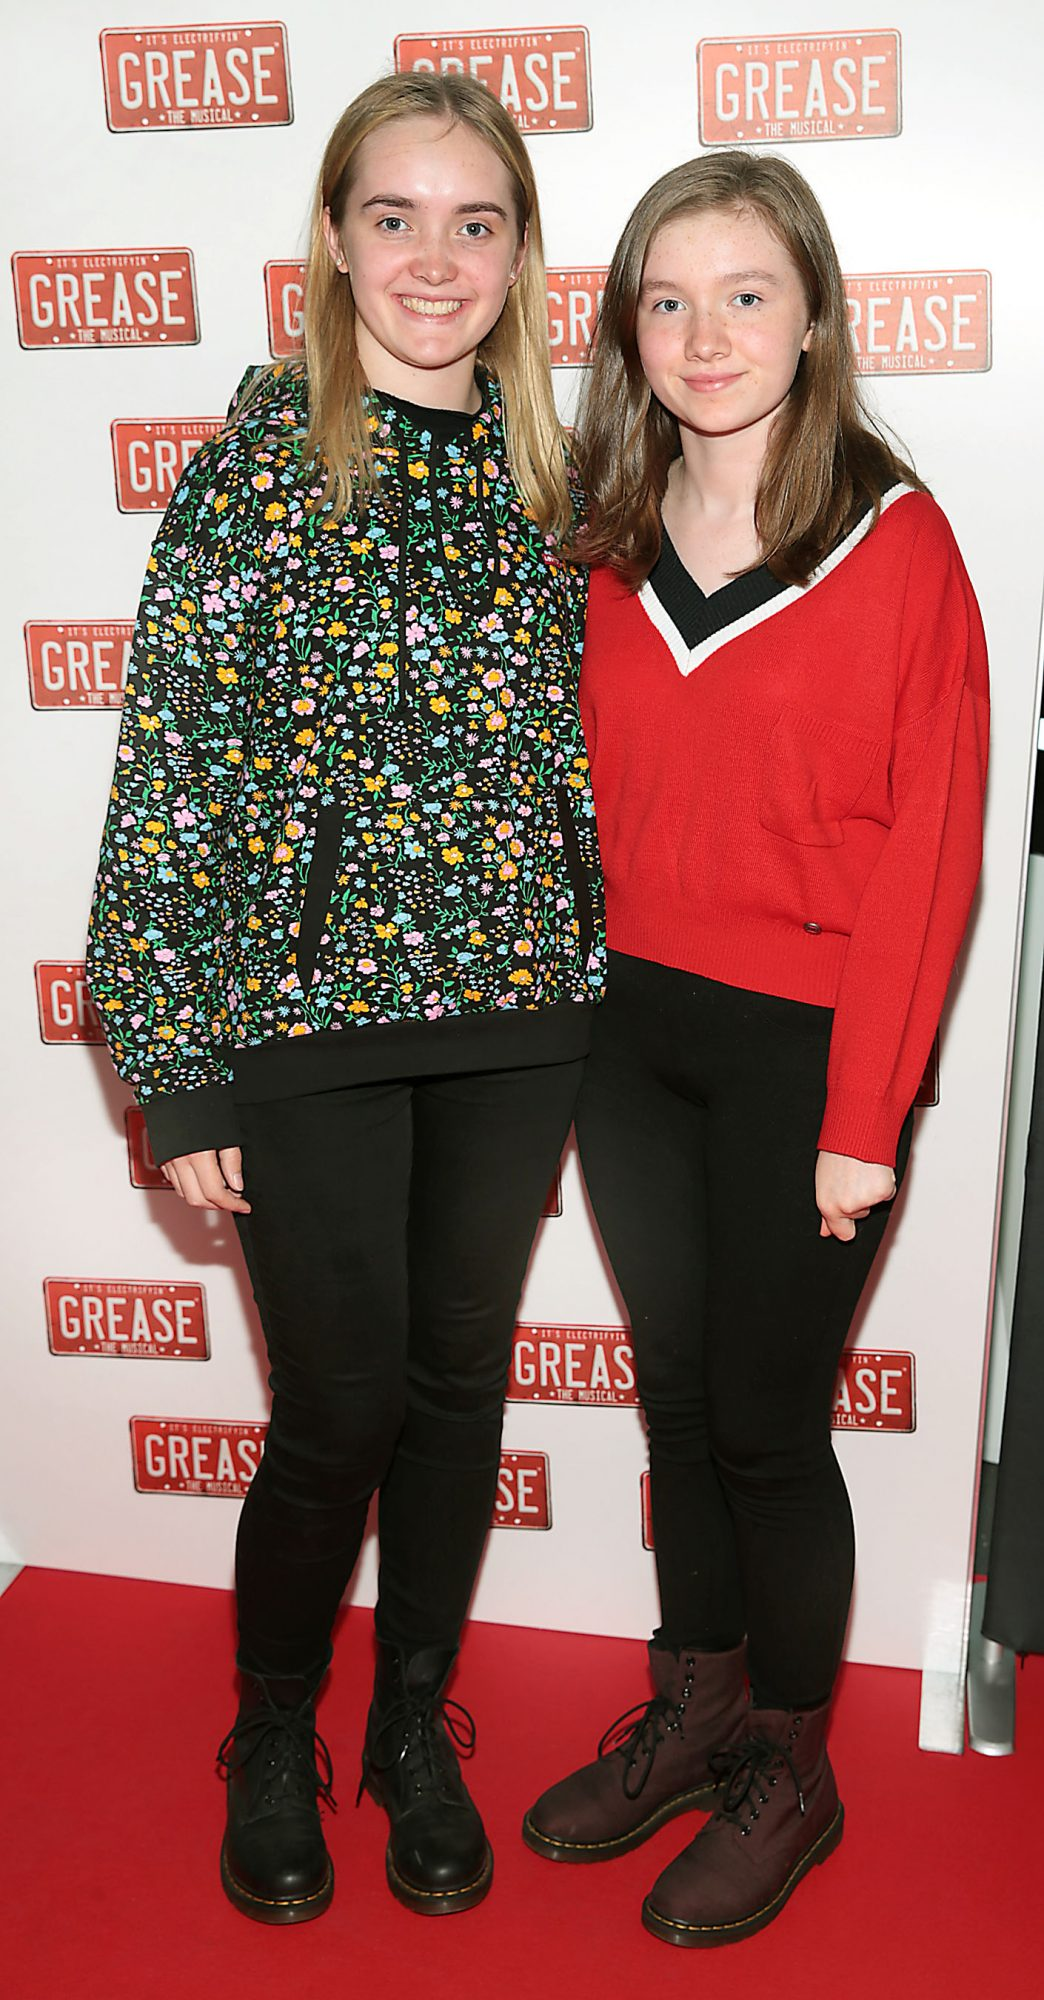 Jill Savage and Tara Savage pictured at the opening night of the musical Grease at the Bord Gais Energy Theatre, Dublin. Pic: Brian McEvoy